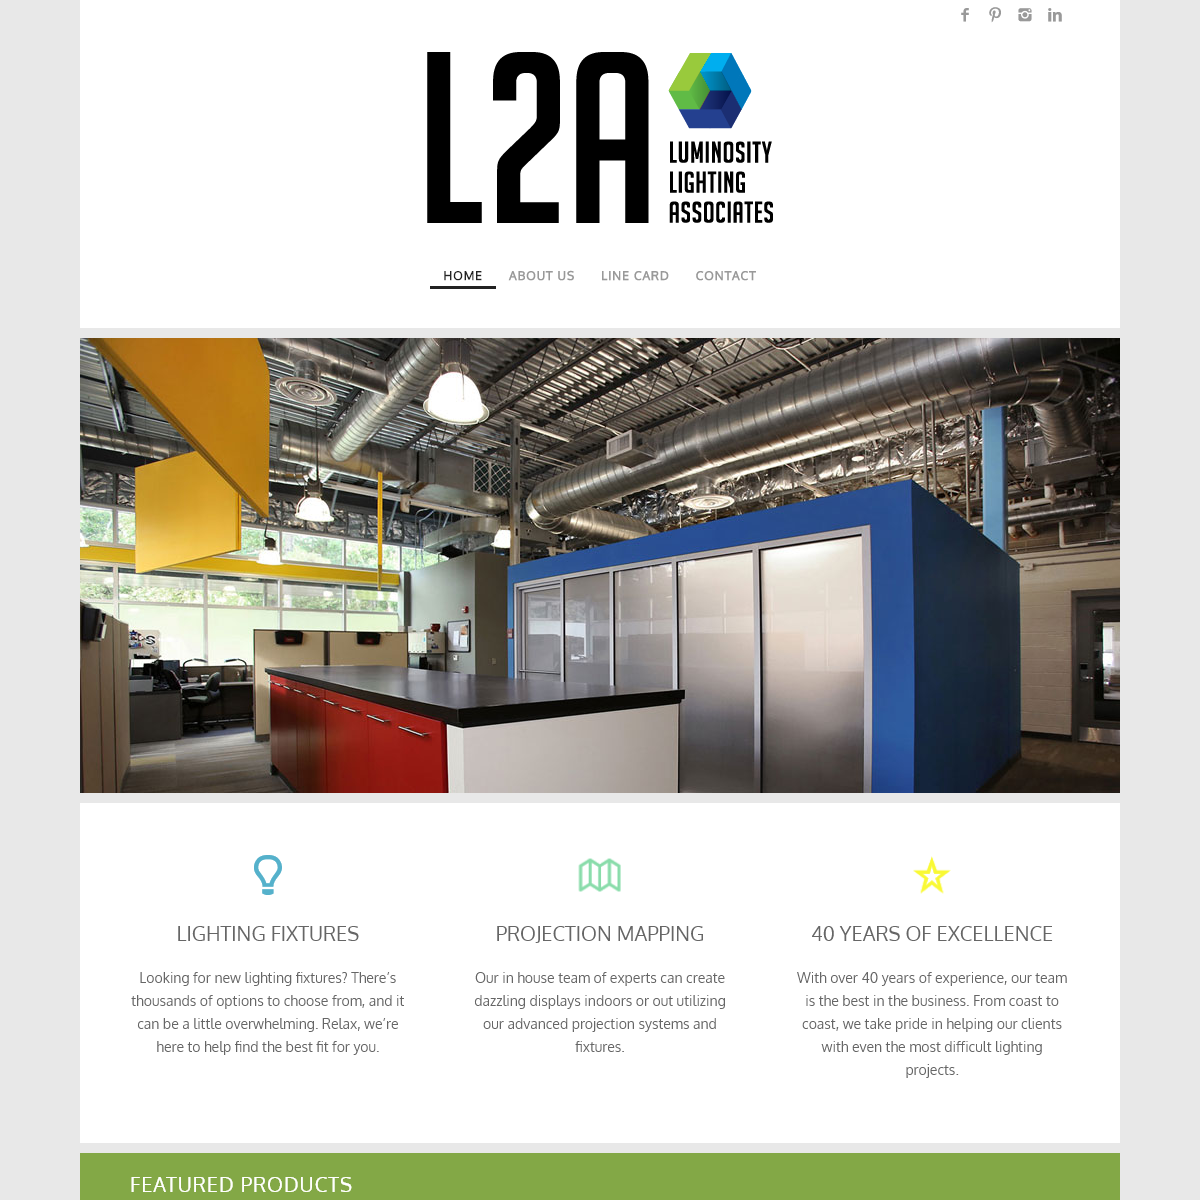 L2A – Creating stunning illumination experiences